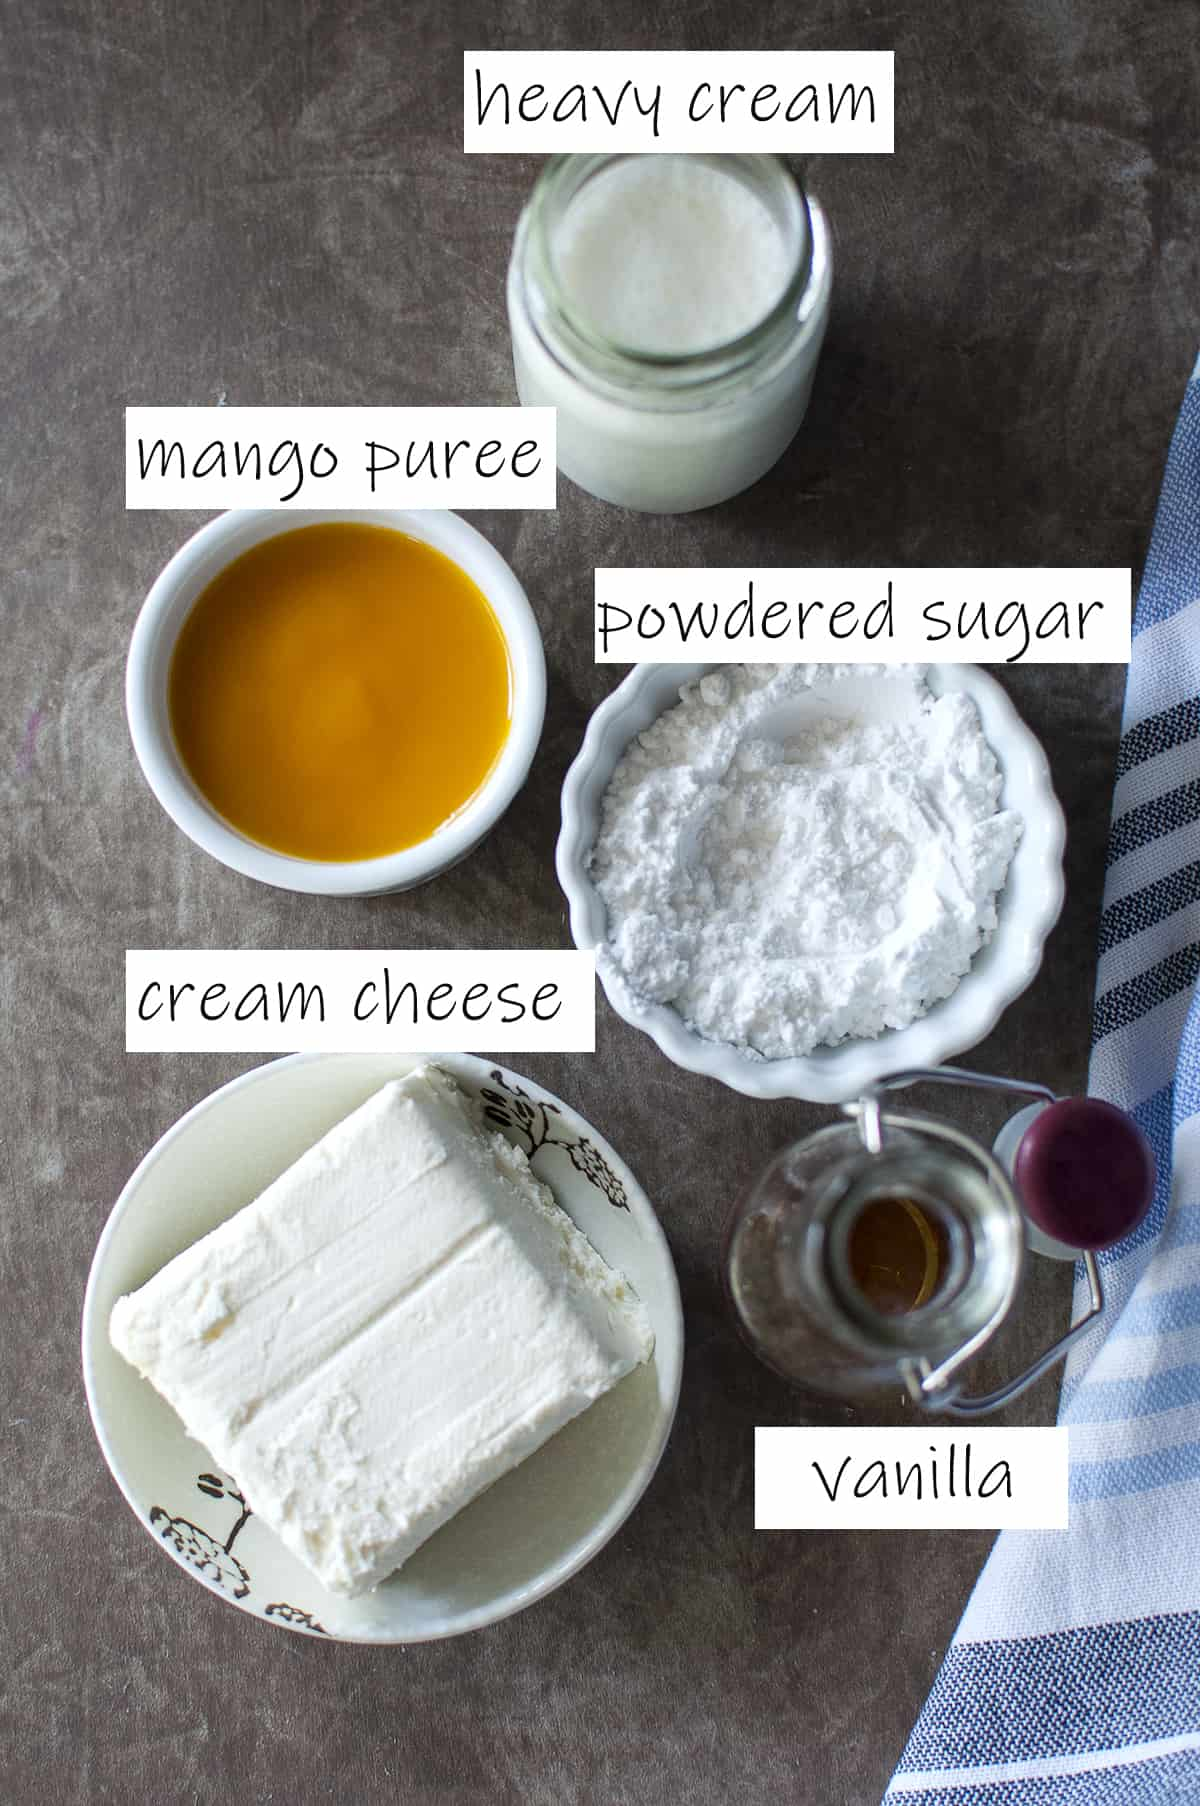 Ingredients needed for the frosting